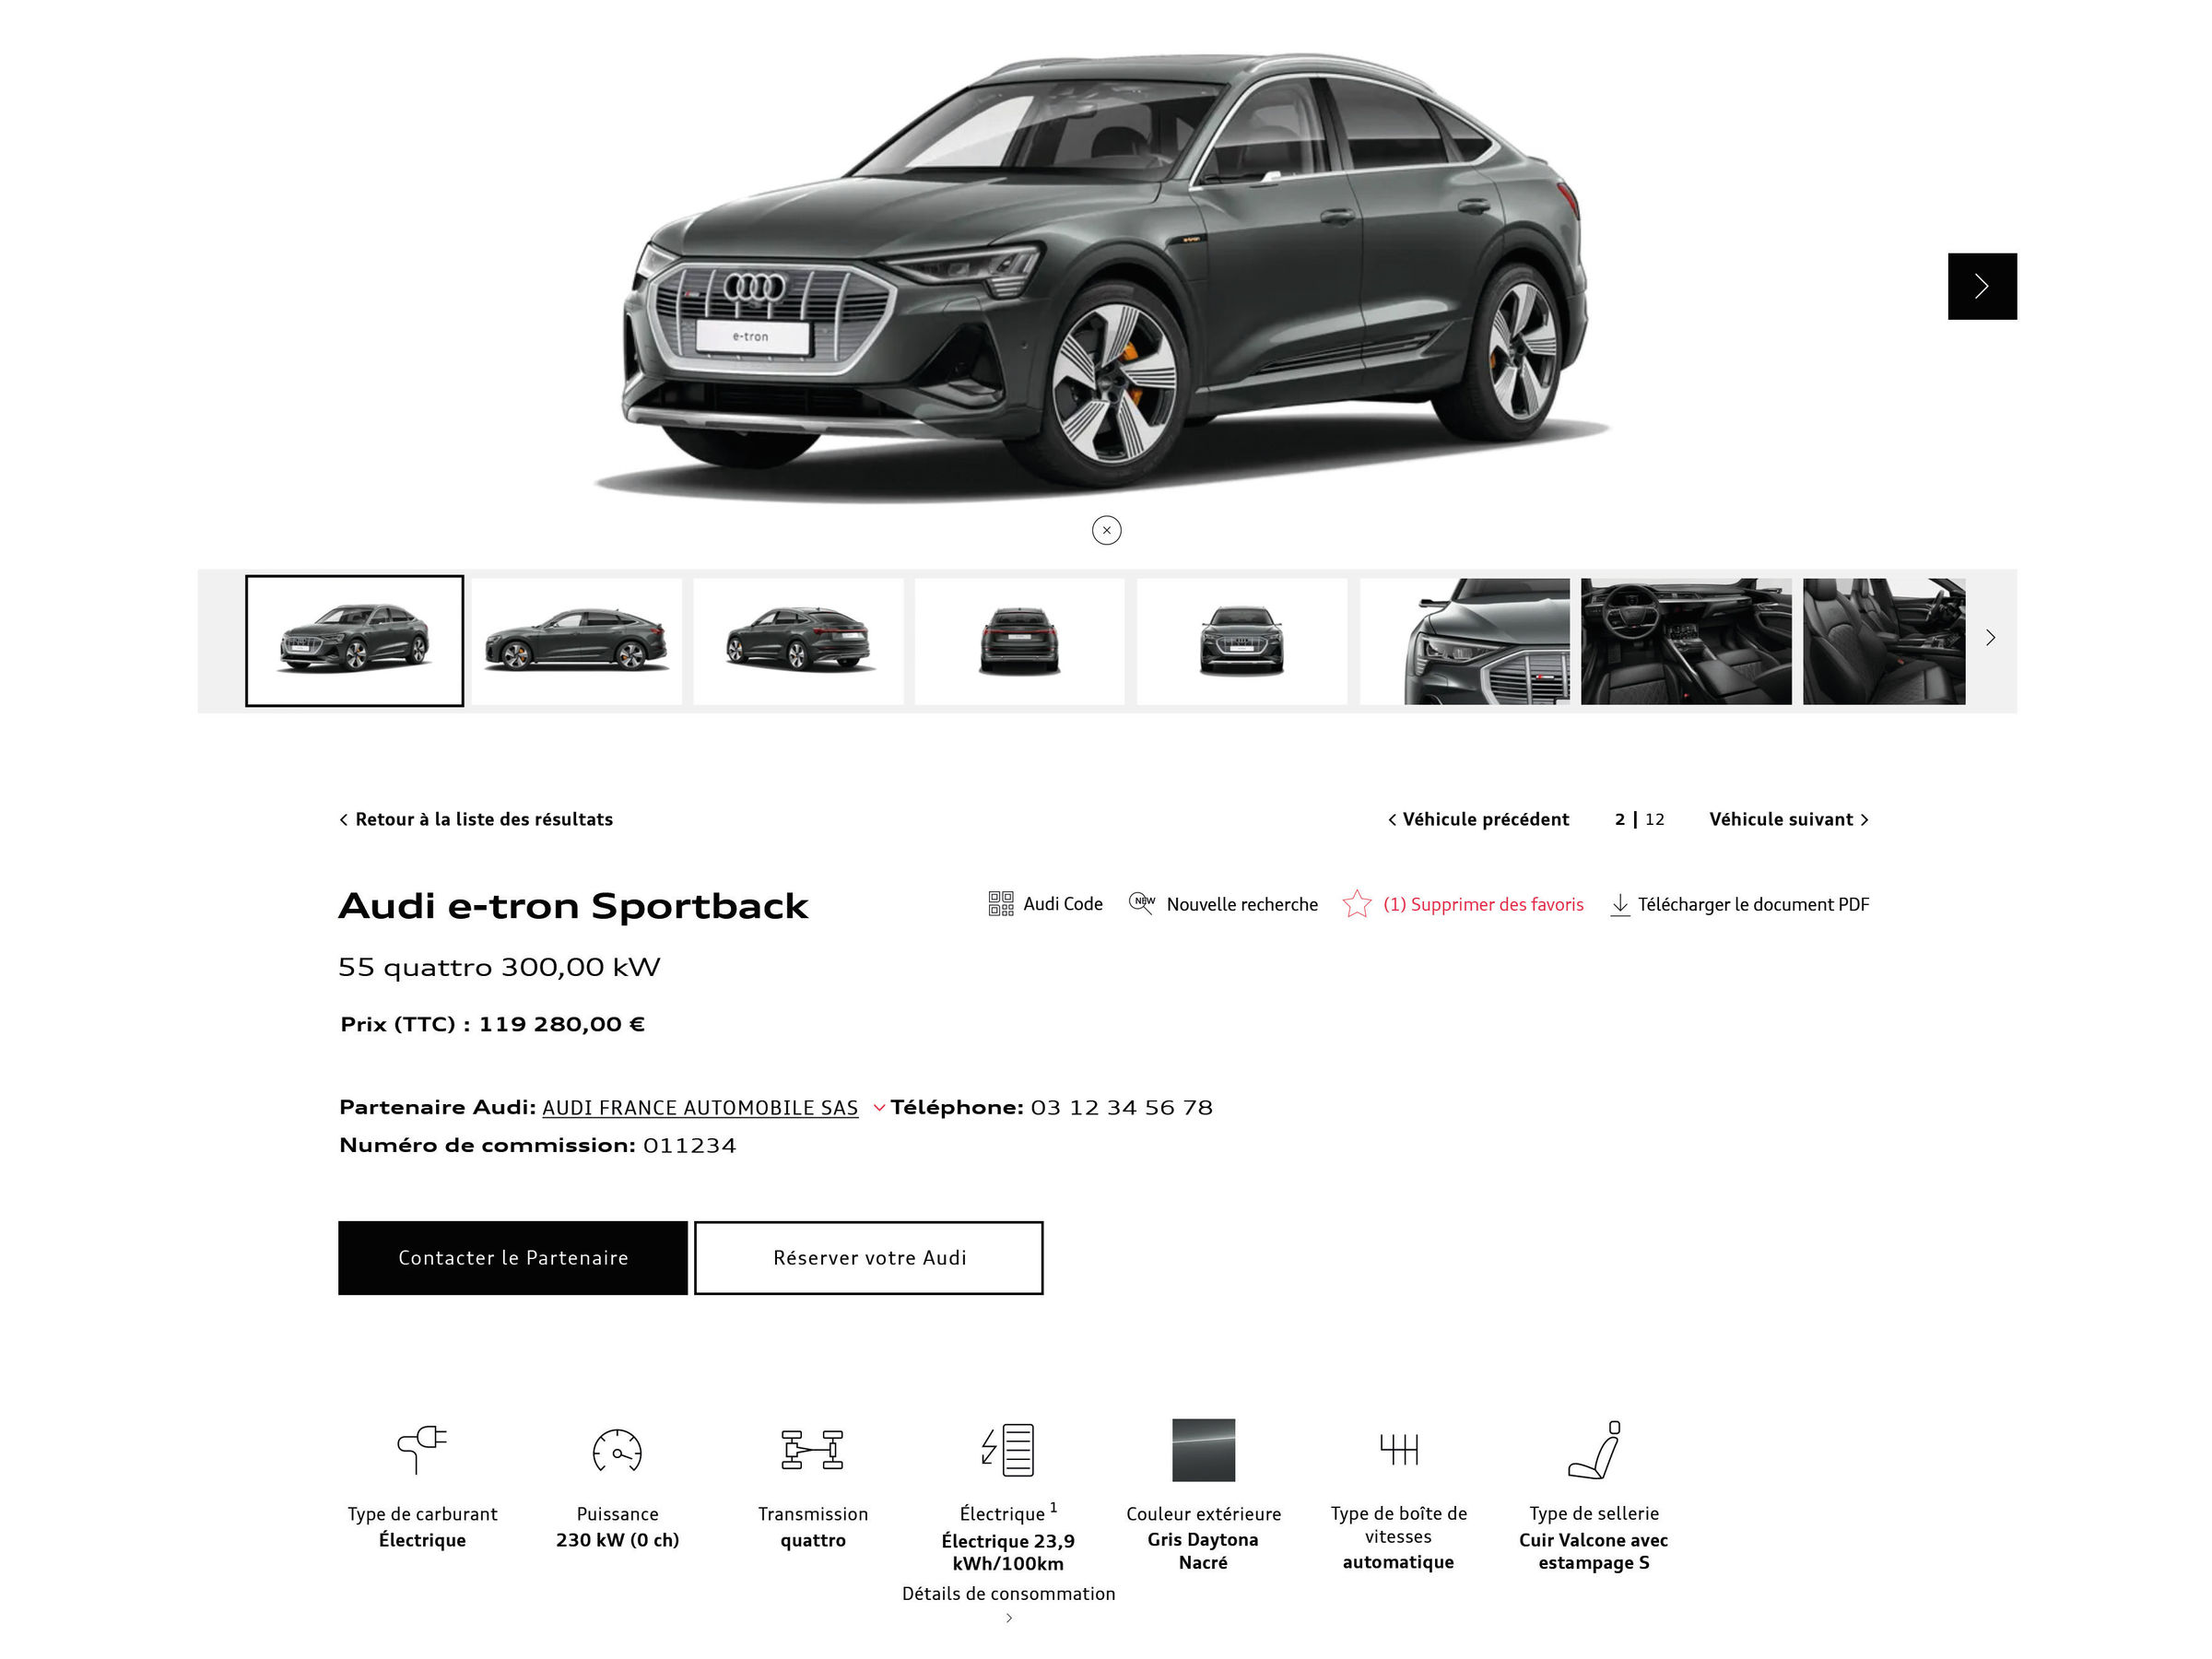 Audi further expands its e-commerce offerings together with retail partners worldwide - Image 1